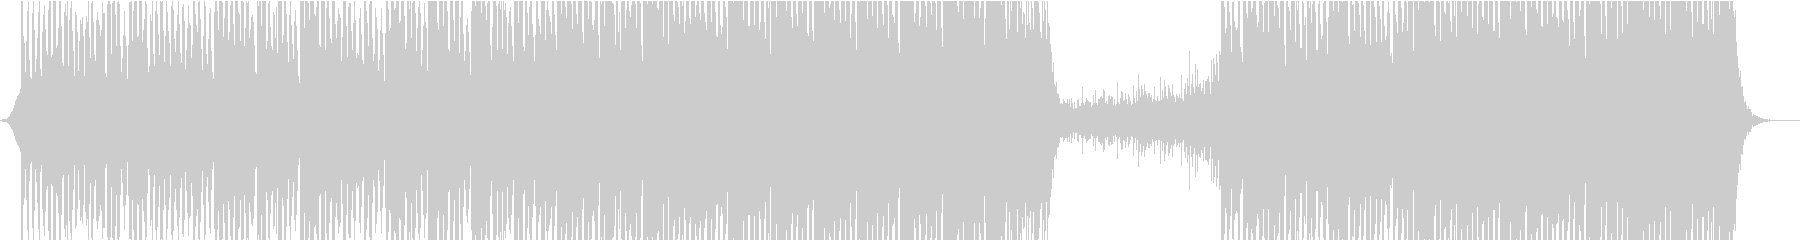 Corporate Music's unreproduced waveform